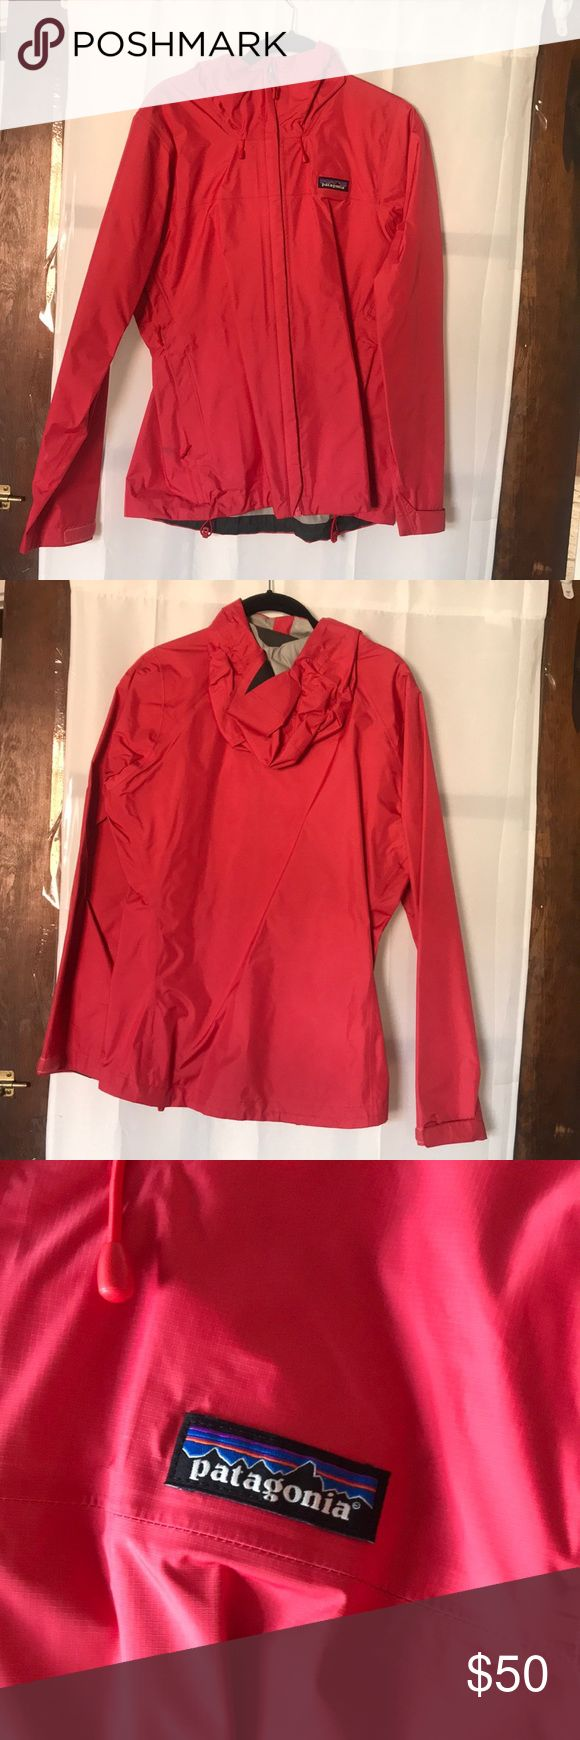 Patagonia Rain Jacket Worn probably once, no signs of damage. Keeps you very dry. Patagonia Jackets & Coats